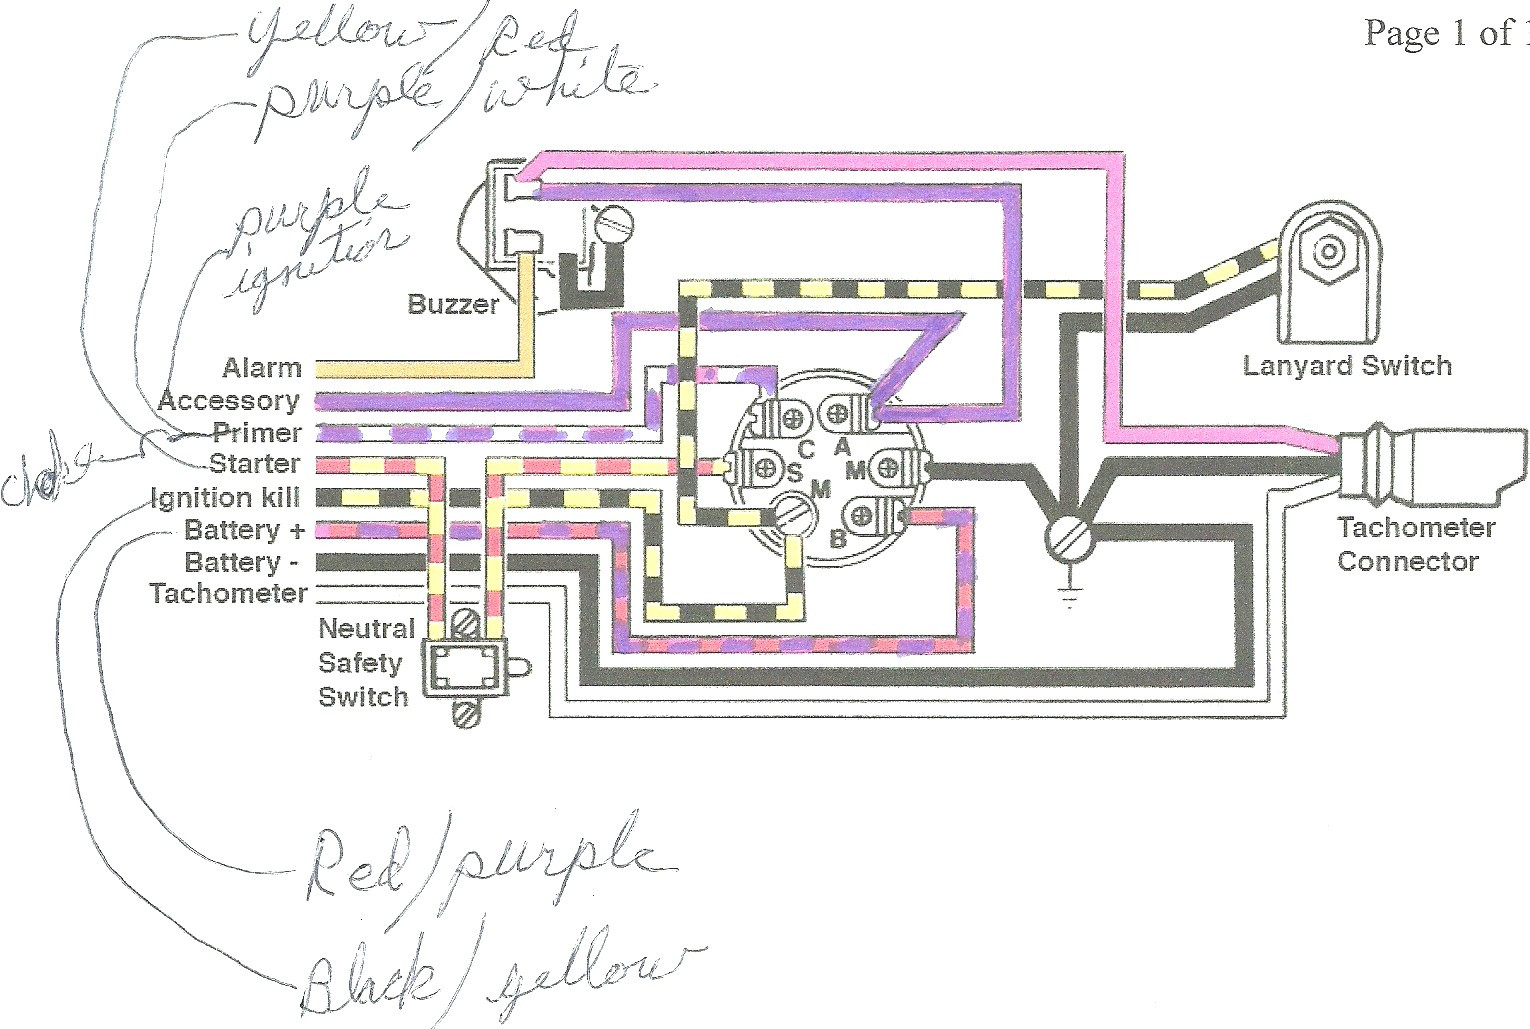 And X 13 Motor Wiring Diagram Wire Colors Wiring Diagram For Mercury Outboard Motor Sample